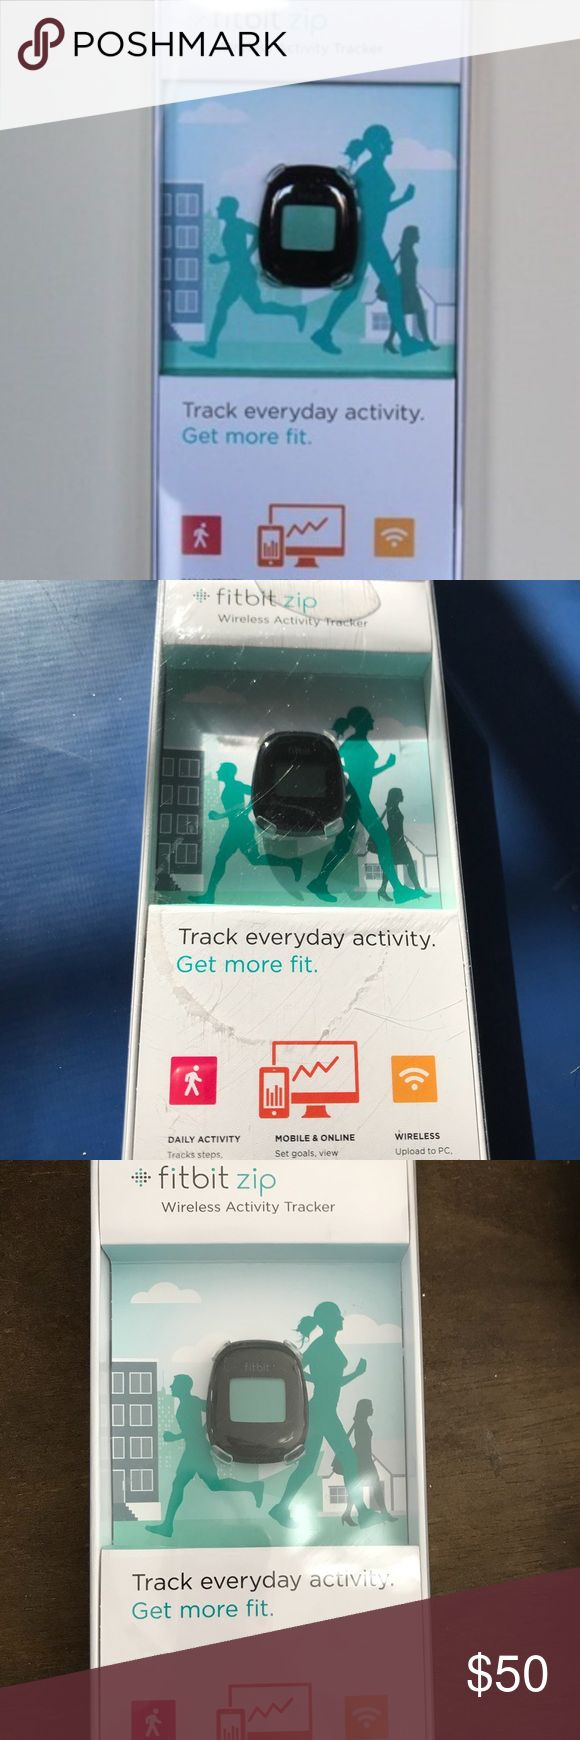 NIB 🎁🎄🎅🏻Fitbit zip wireless activity tracker NIB Great xmas present 🎁 comes w tracker clip battery wireless usb dongle battery tool free Fitbit account bundle 3 or more items from my closet to receive my 15% discount all reasonable offers accepted smoke free home Other